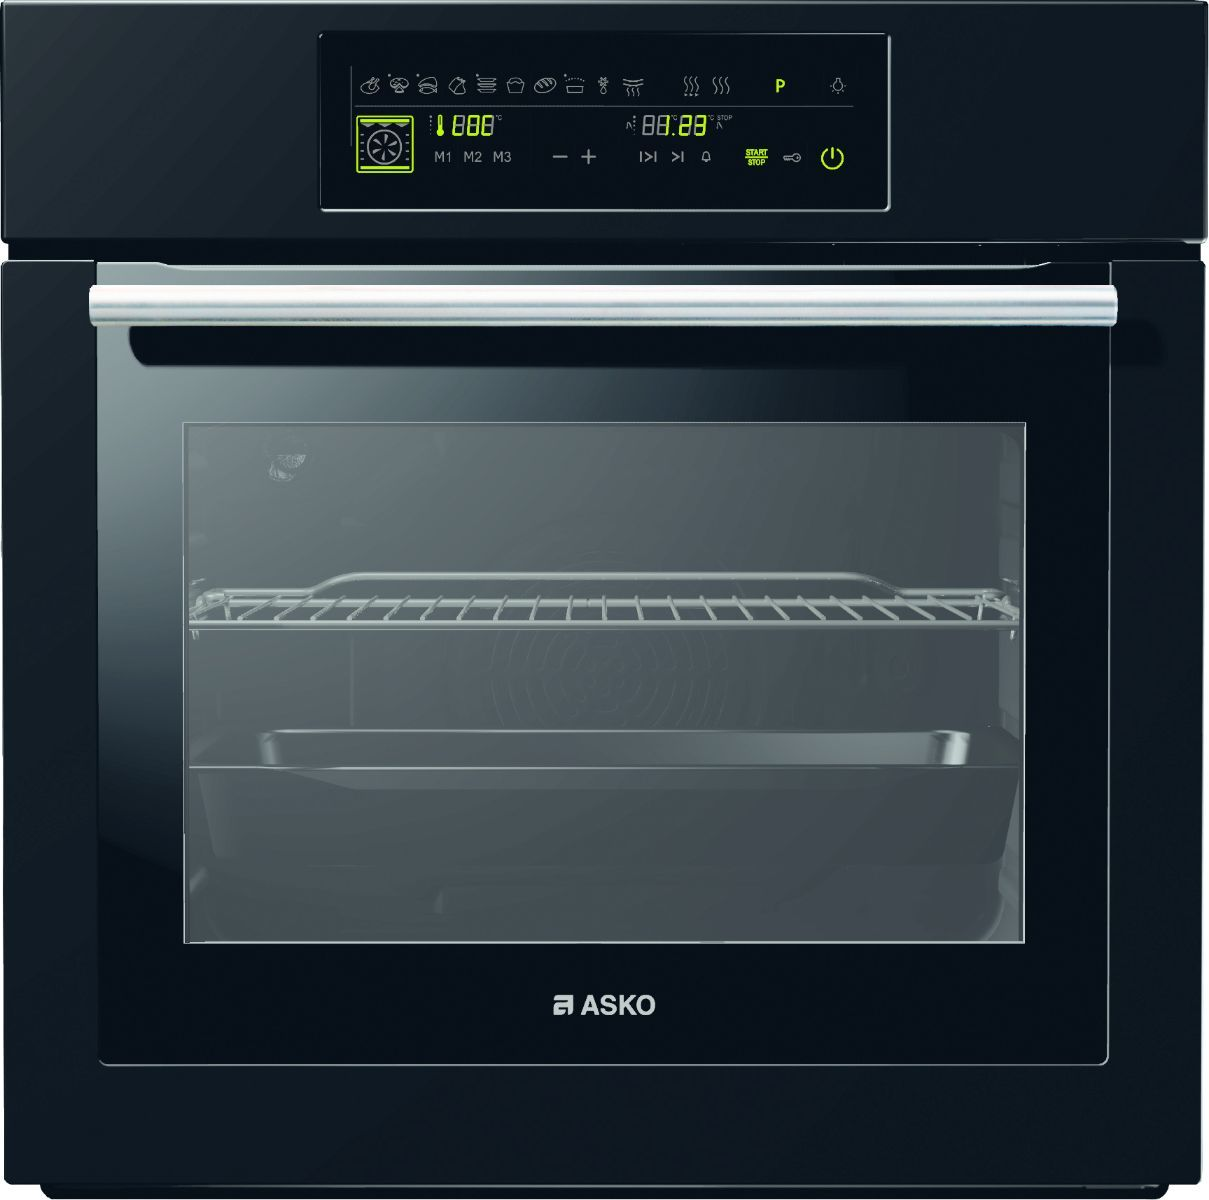 OP8621 Pyrolytic Touch Oven Asko Appliances Kitchen